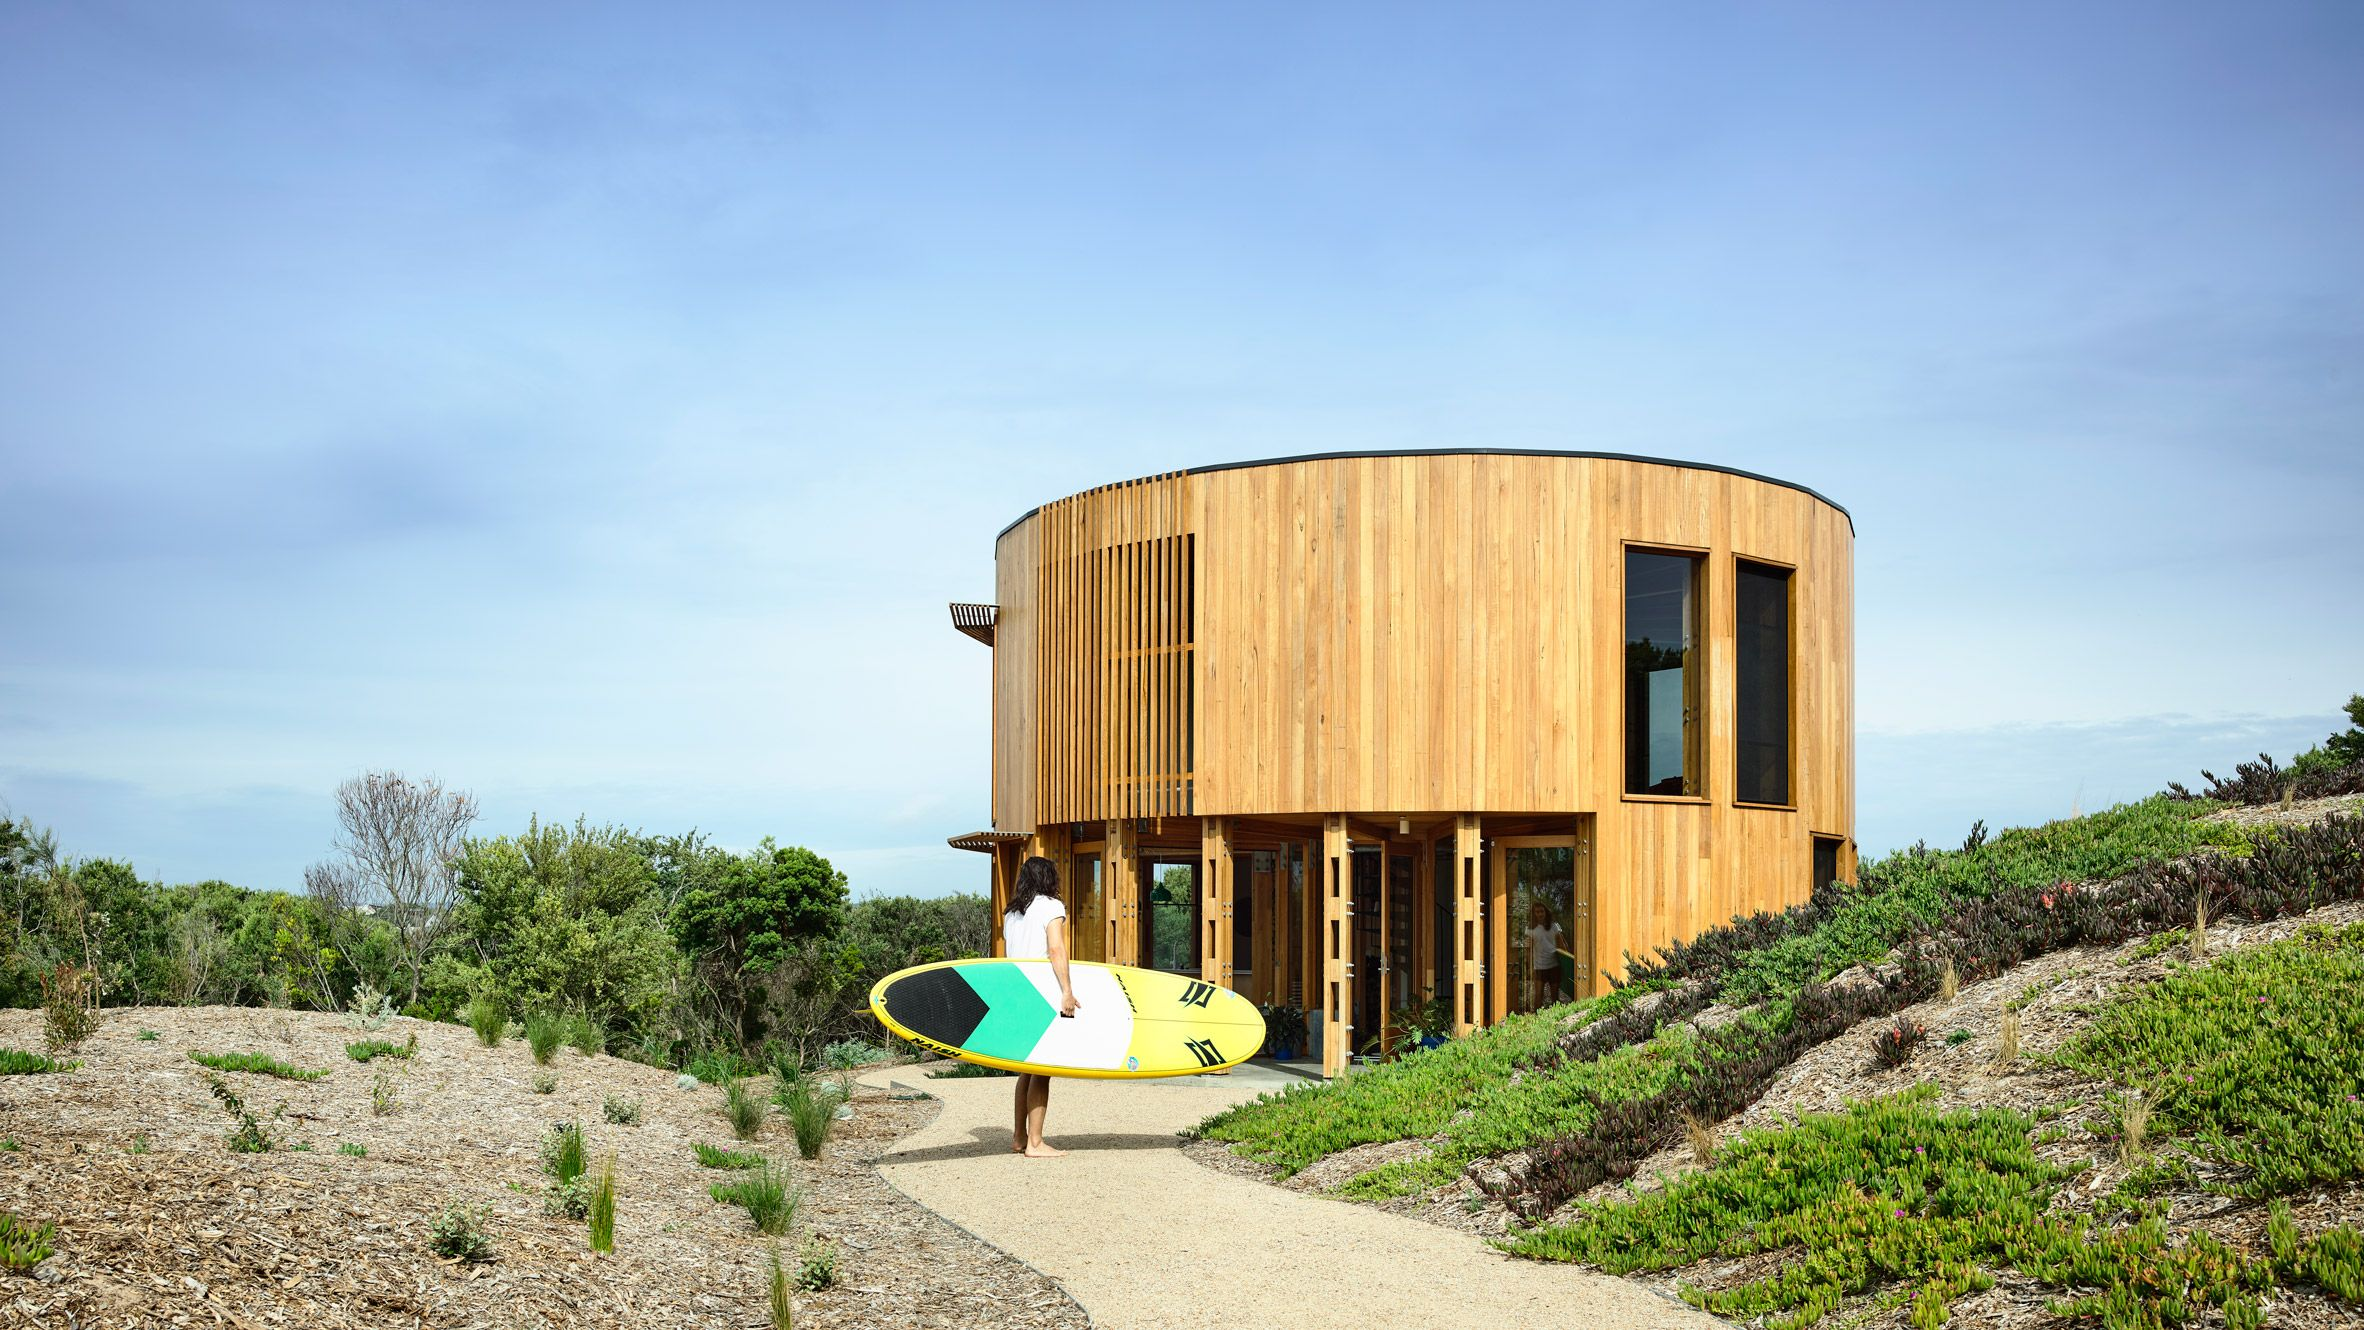 A Cylindrical Timber Holiday Home Designed By Austin Maynard